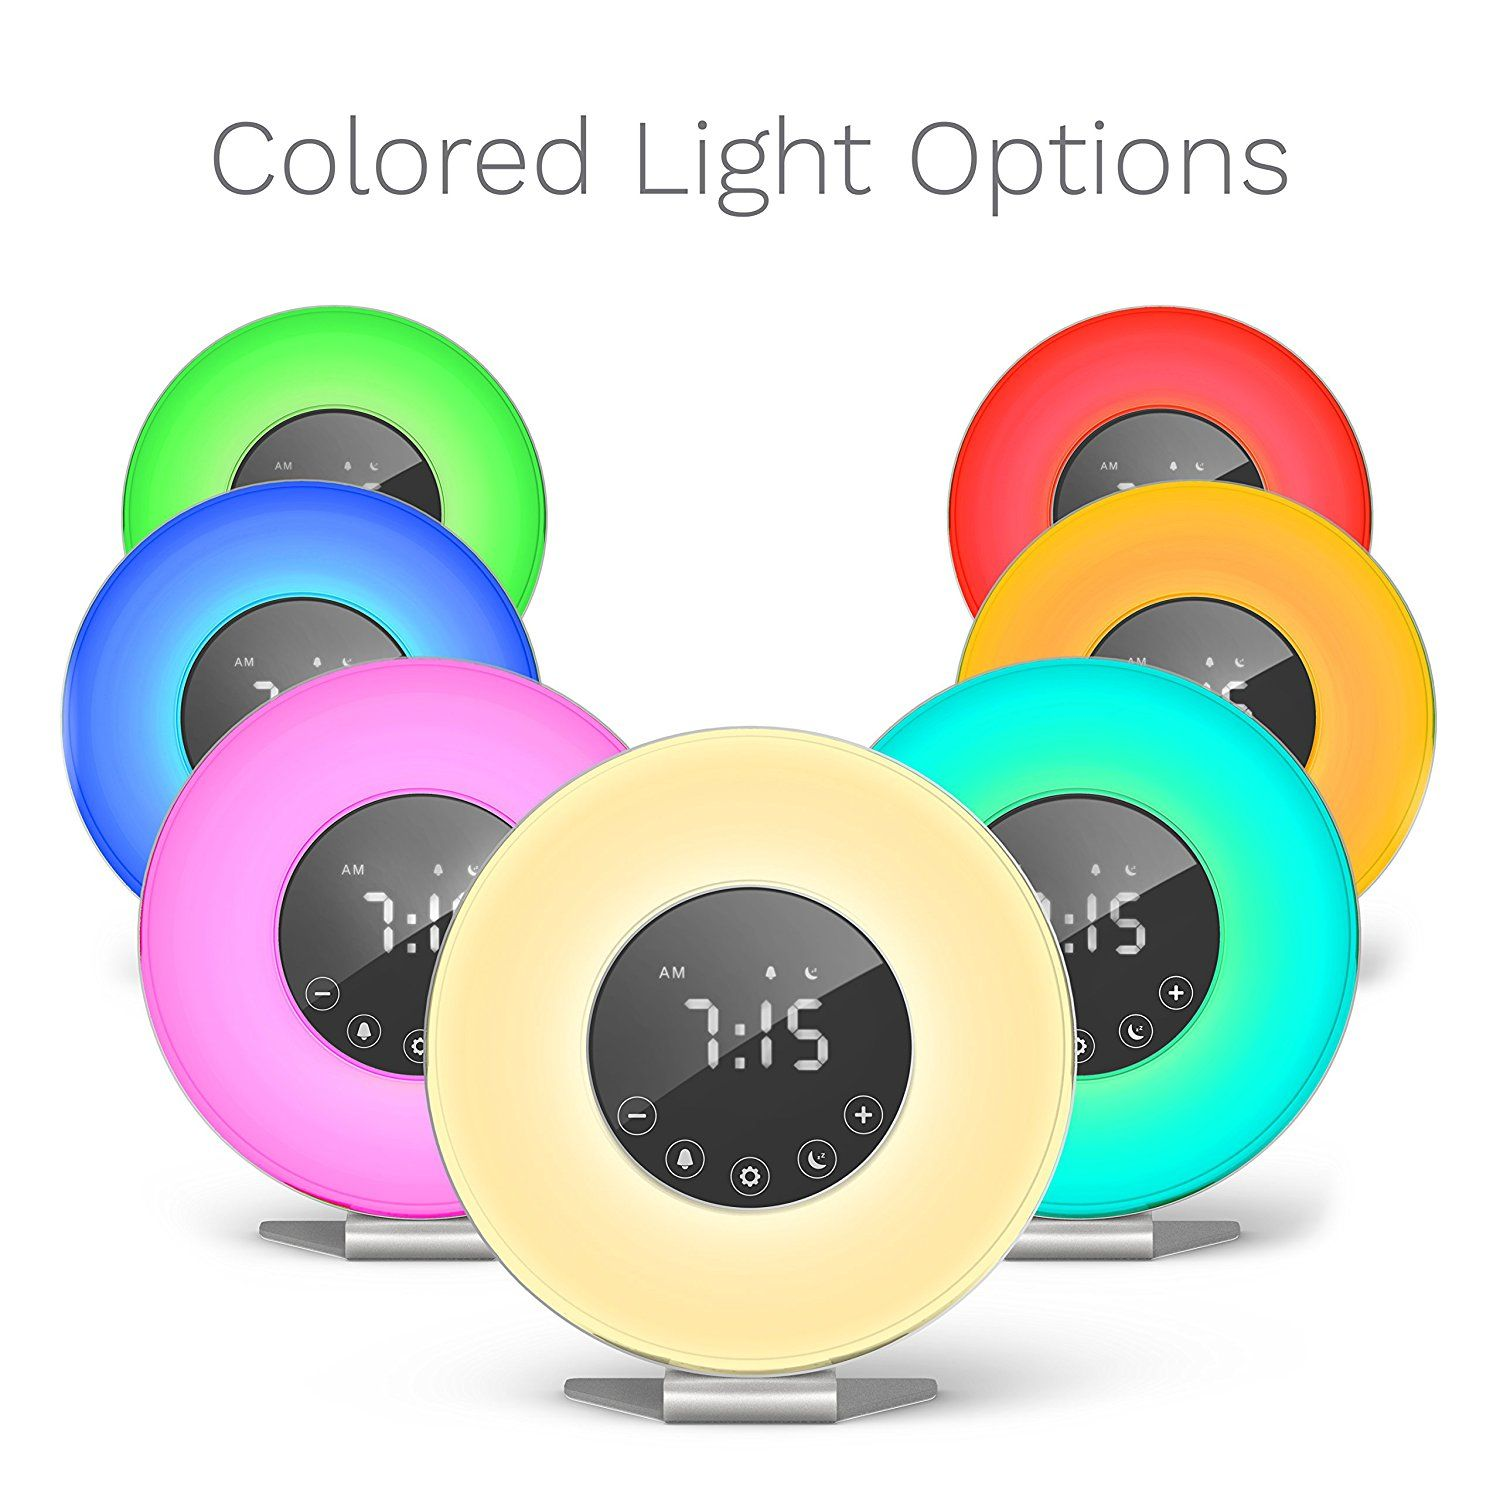 Homelabs Sunrise Alarm Clock Digital Led Clock With 6 Color Switch And Fm Radio For Bedrooms Multiple Nature Sunrise Alarm Clock Led Clock Led Alarm Clock